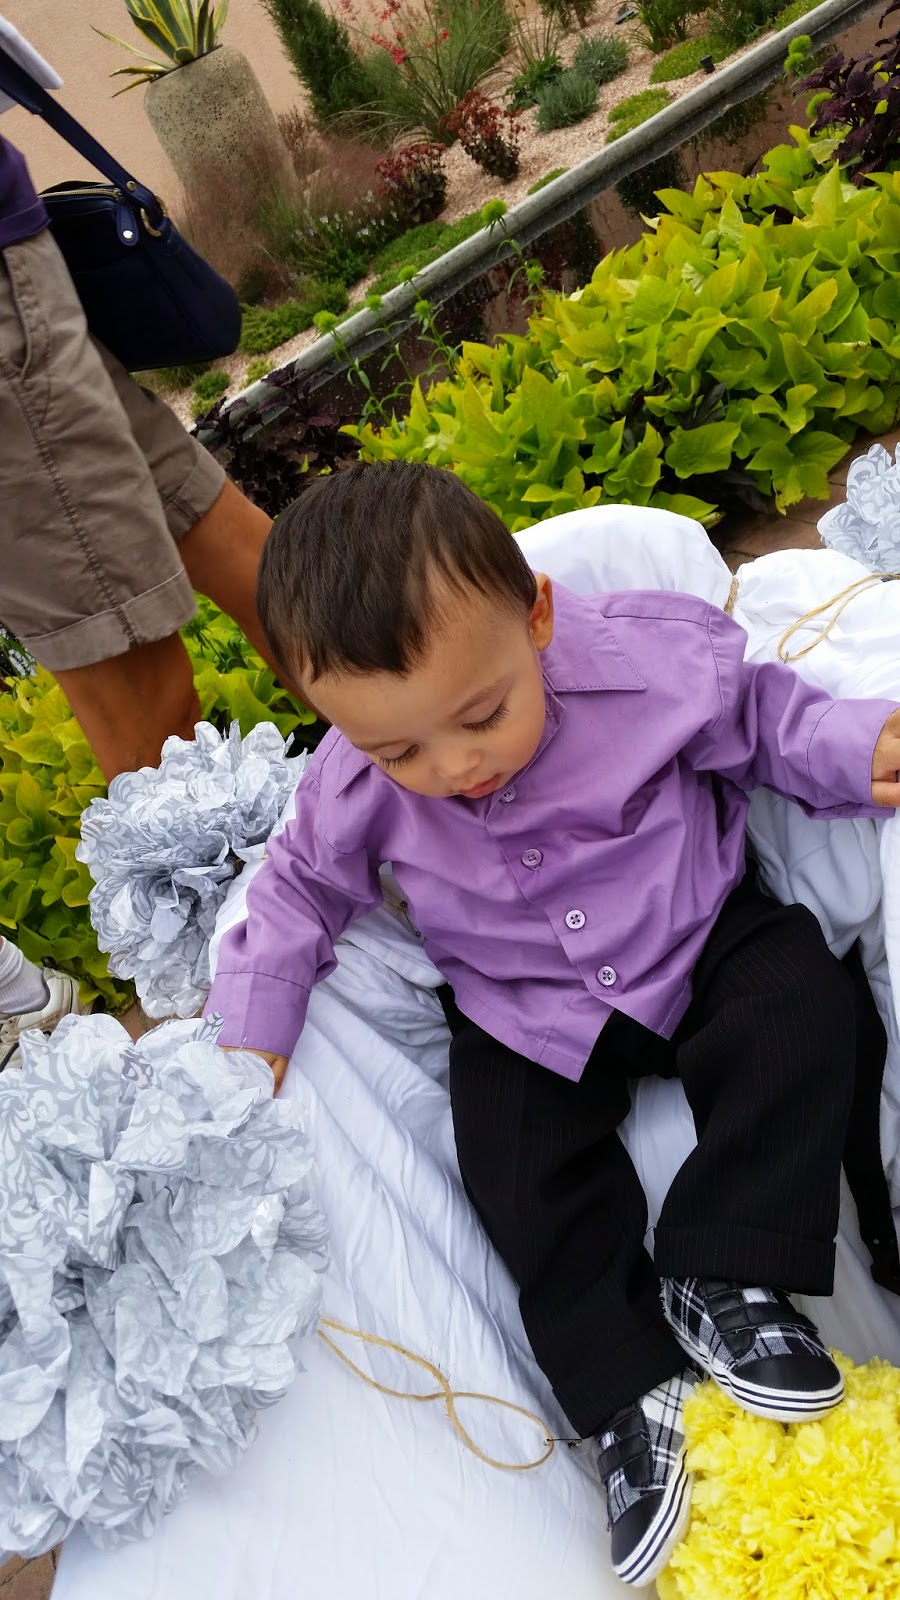 DJ Emir's Son Emerson in The Wedding Ring Bearer Cart at Denver Botanic Gardens